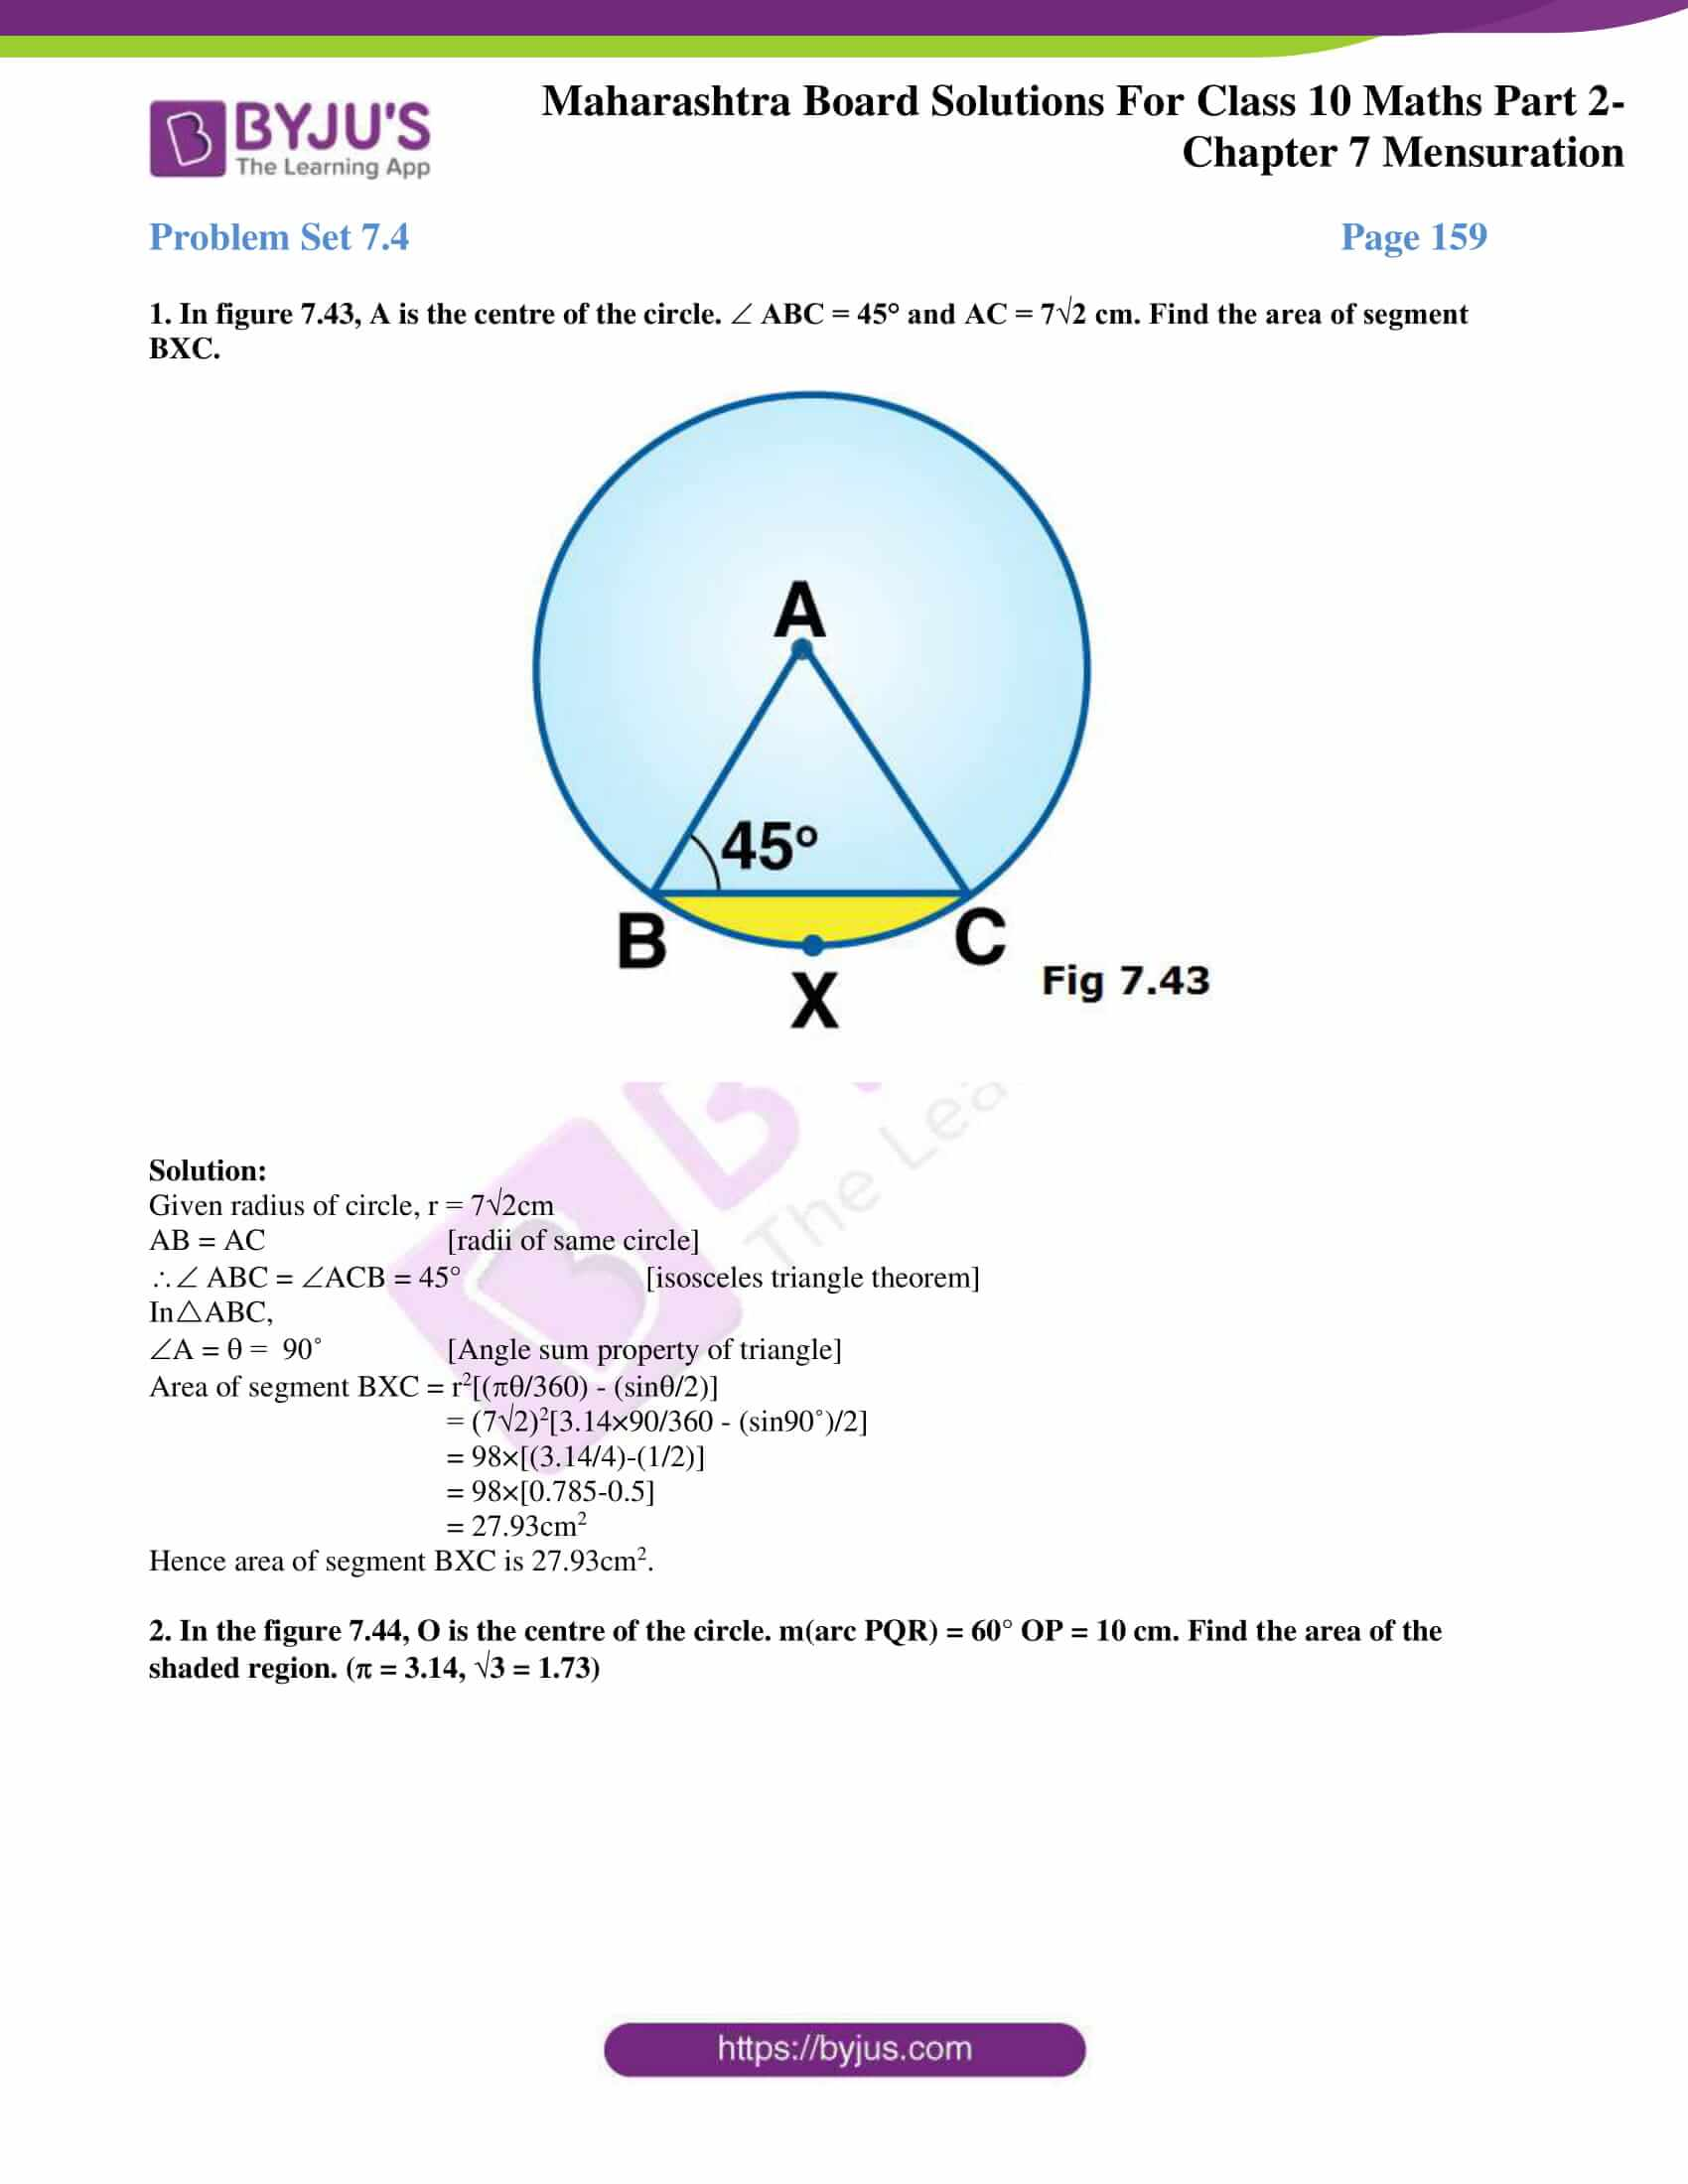 msbshse sol class 10 maths part 2 chapter 7 18